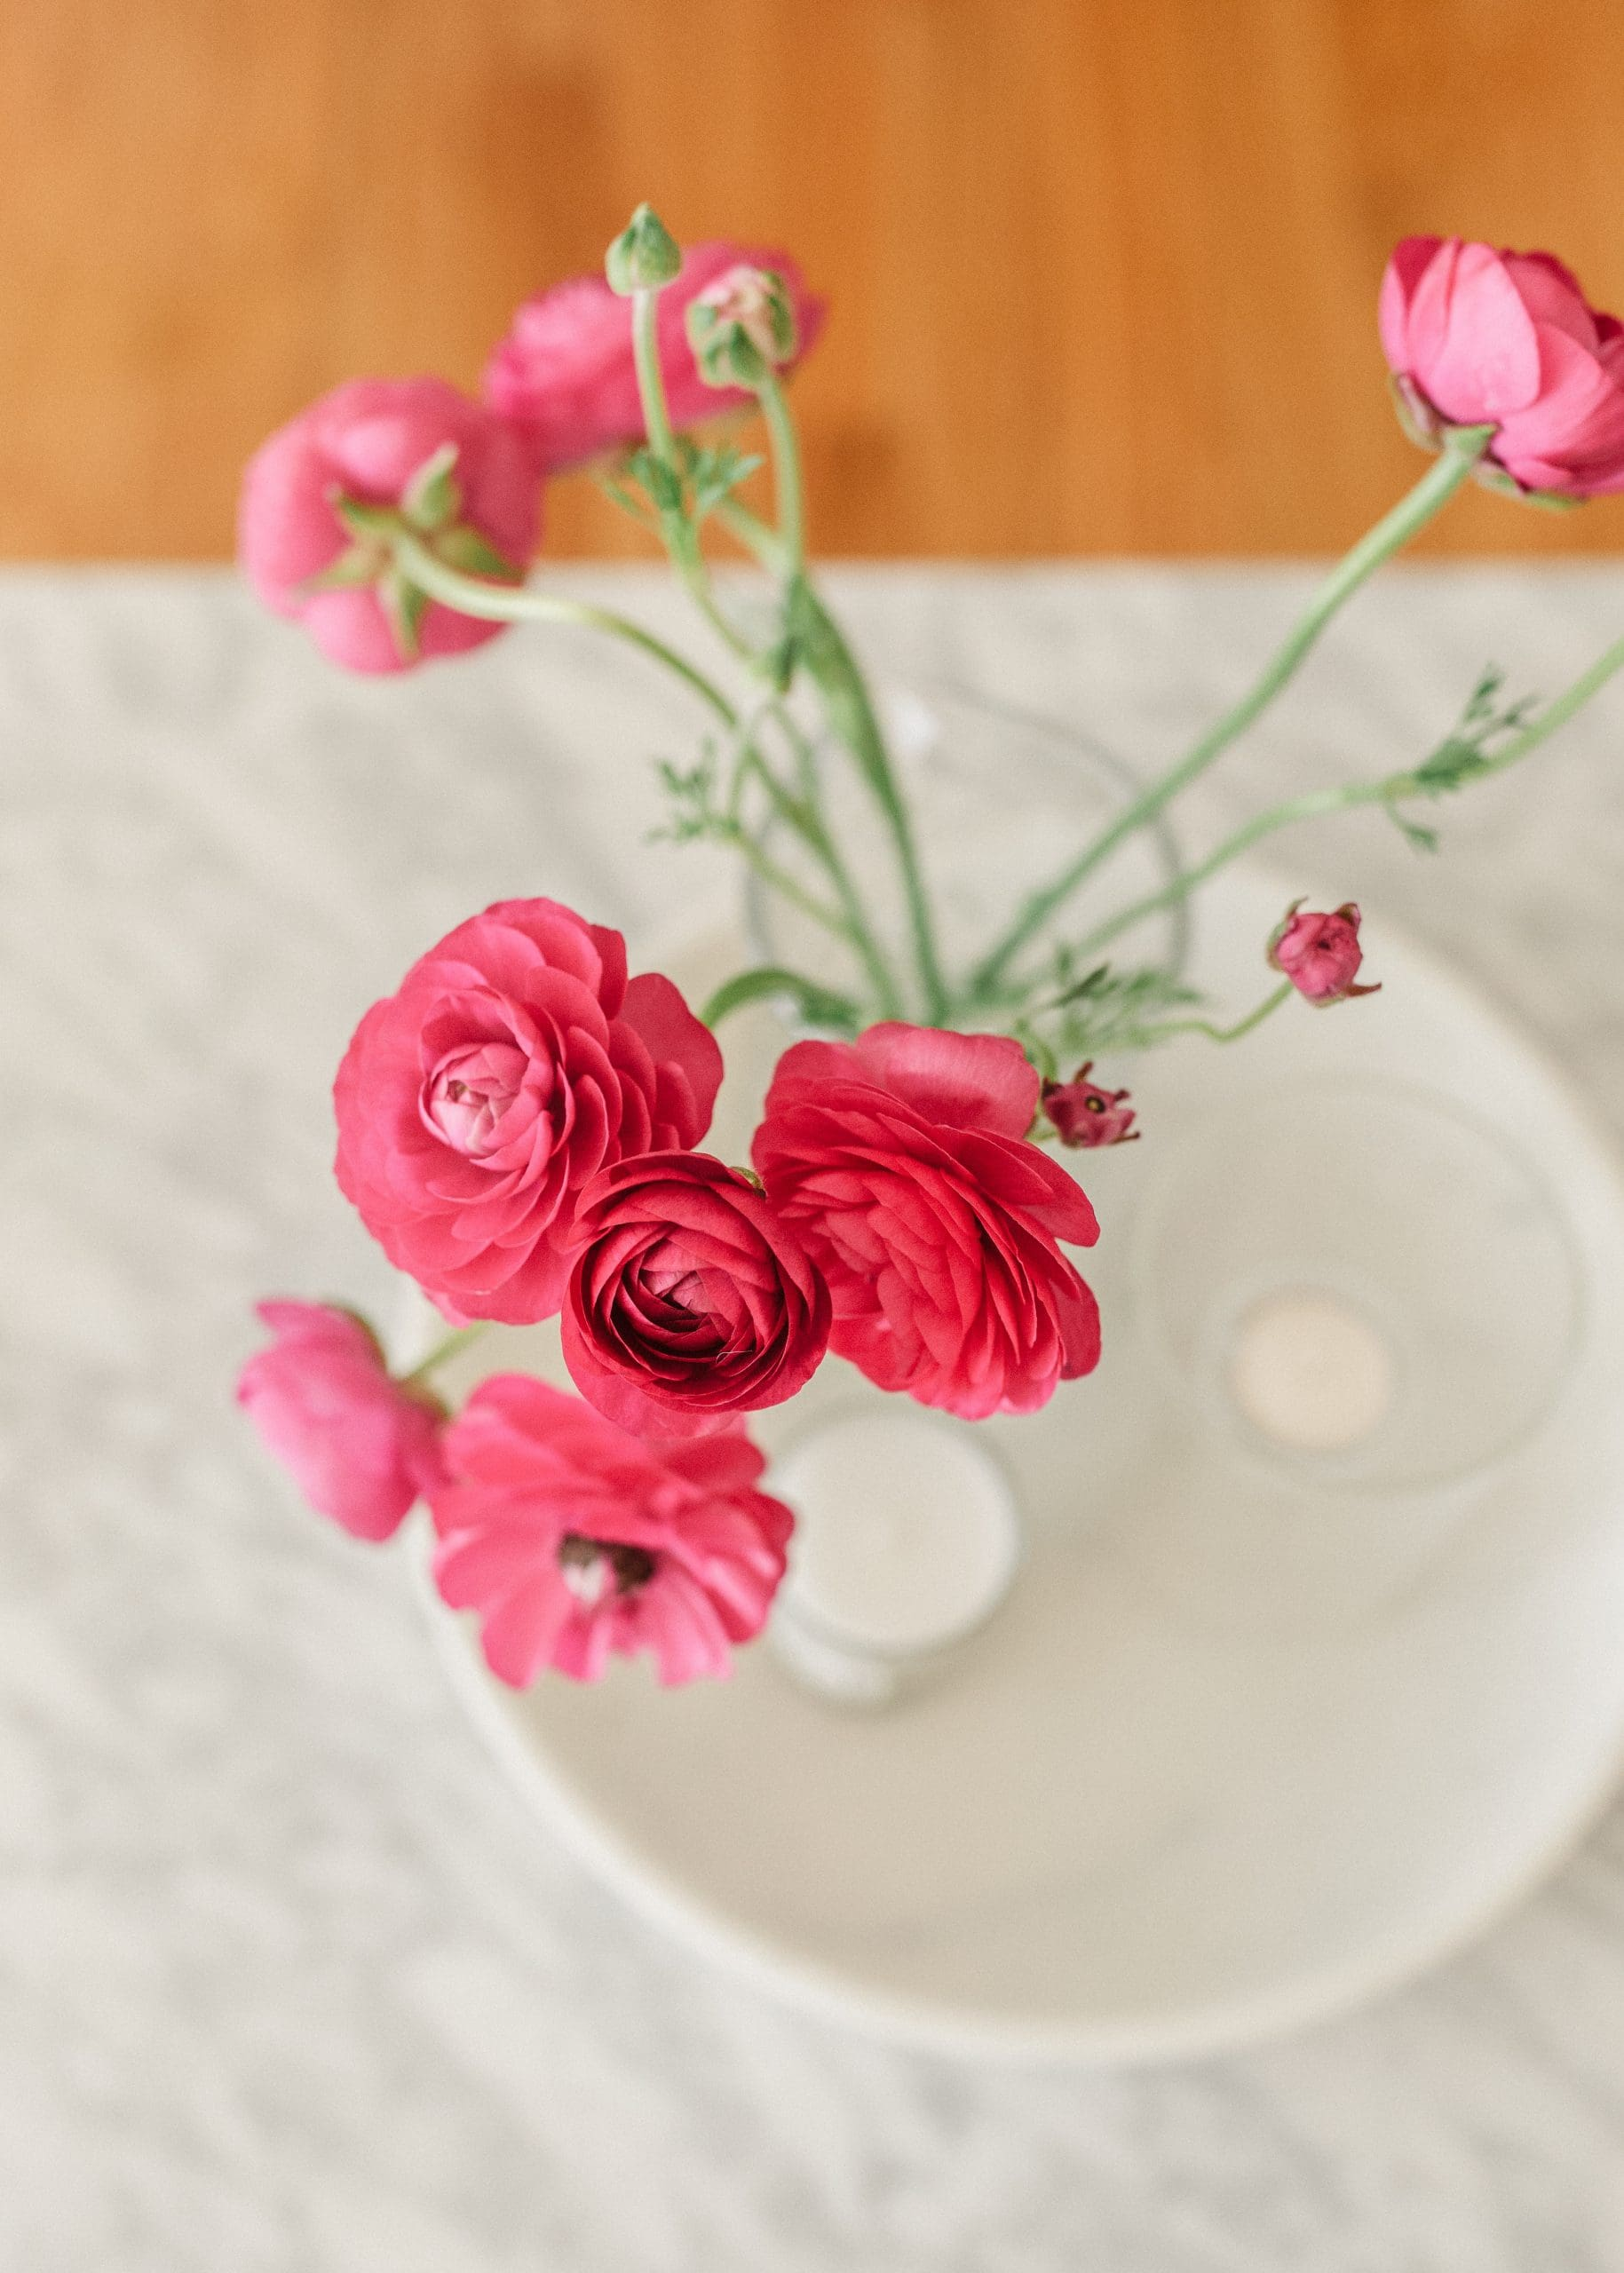 The Heirloom Pantry Valentine's Day Gift Guide - ranunculus in a marble vase